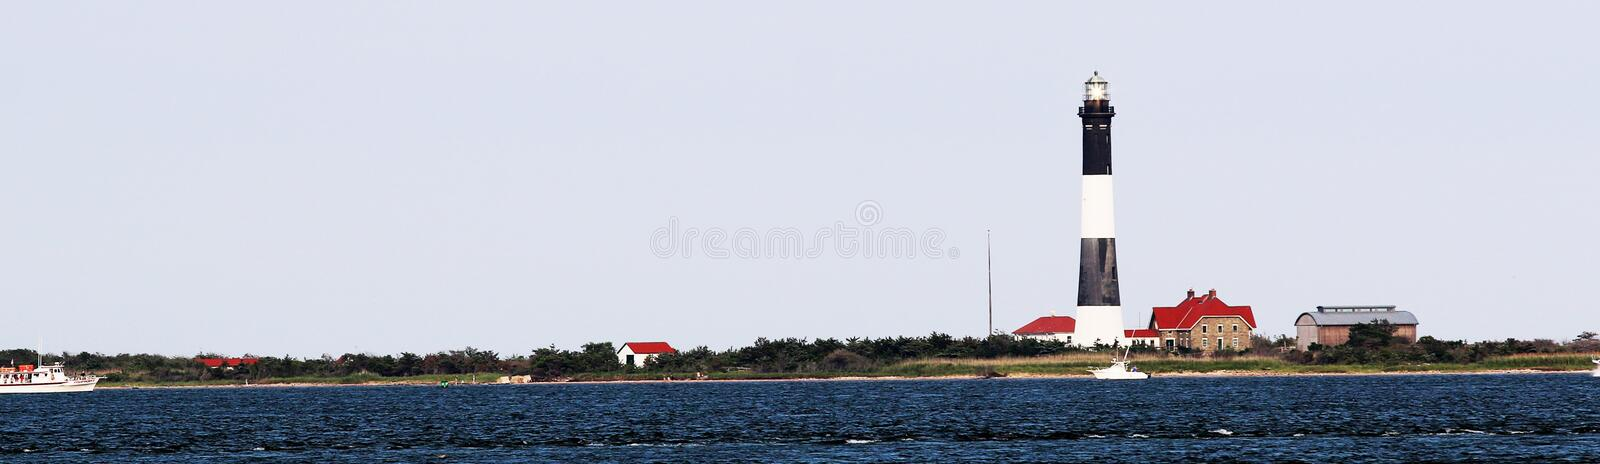 The Fire Island Lighthouse from the Bay side. The Fire Island Lighthouse taken from behind on a very windy day stock photo